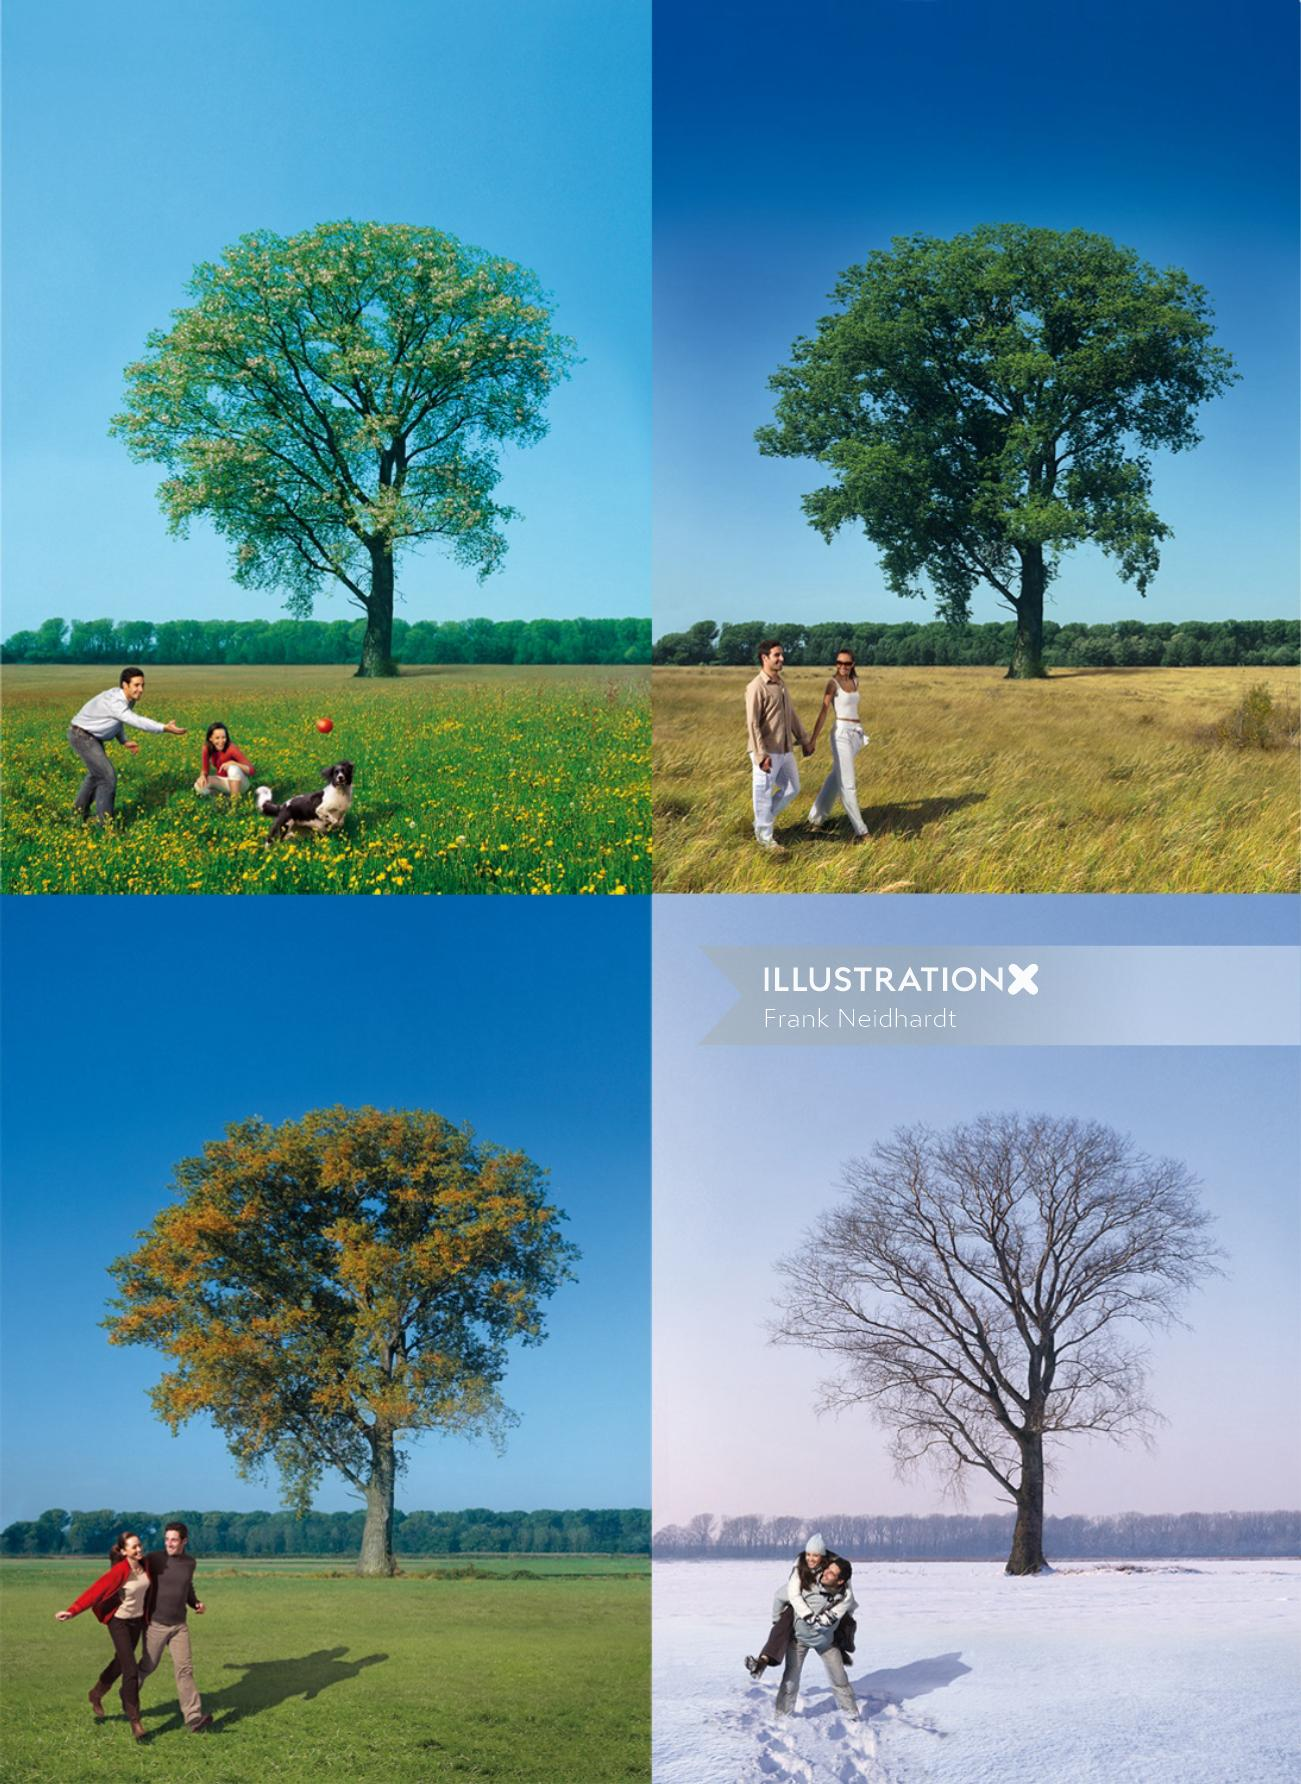 Tree in different seasons